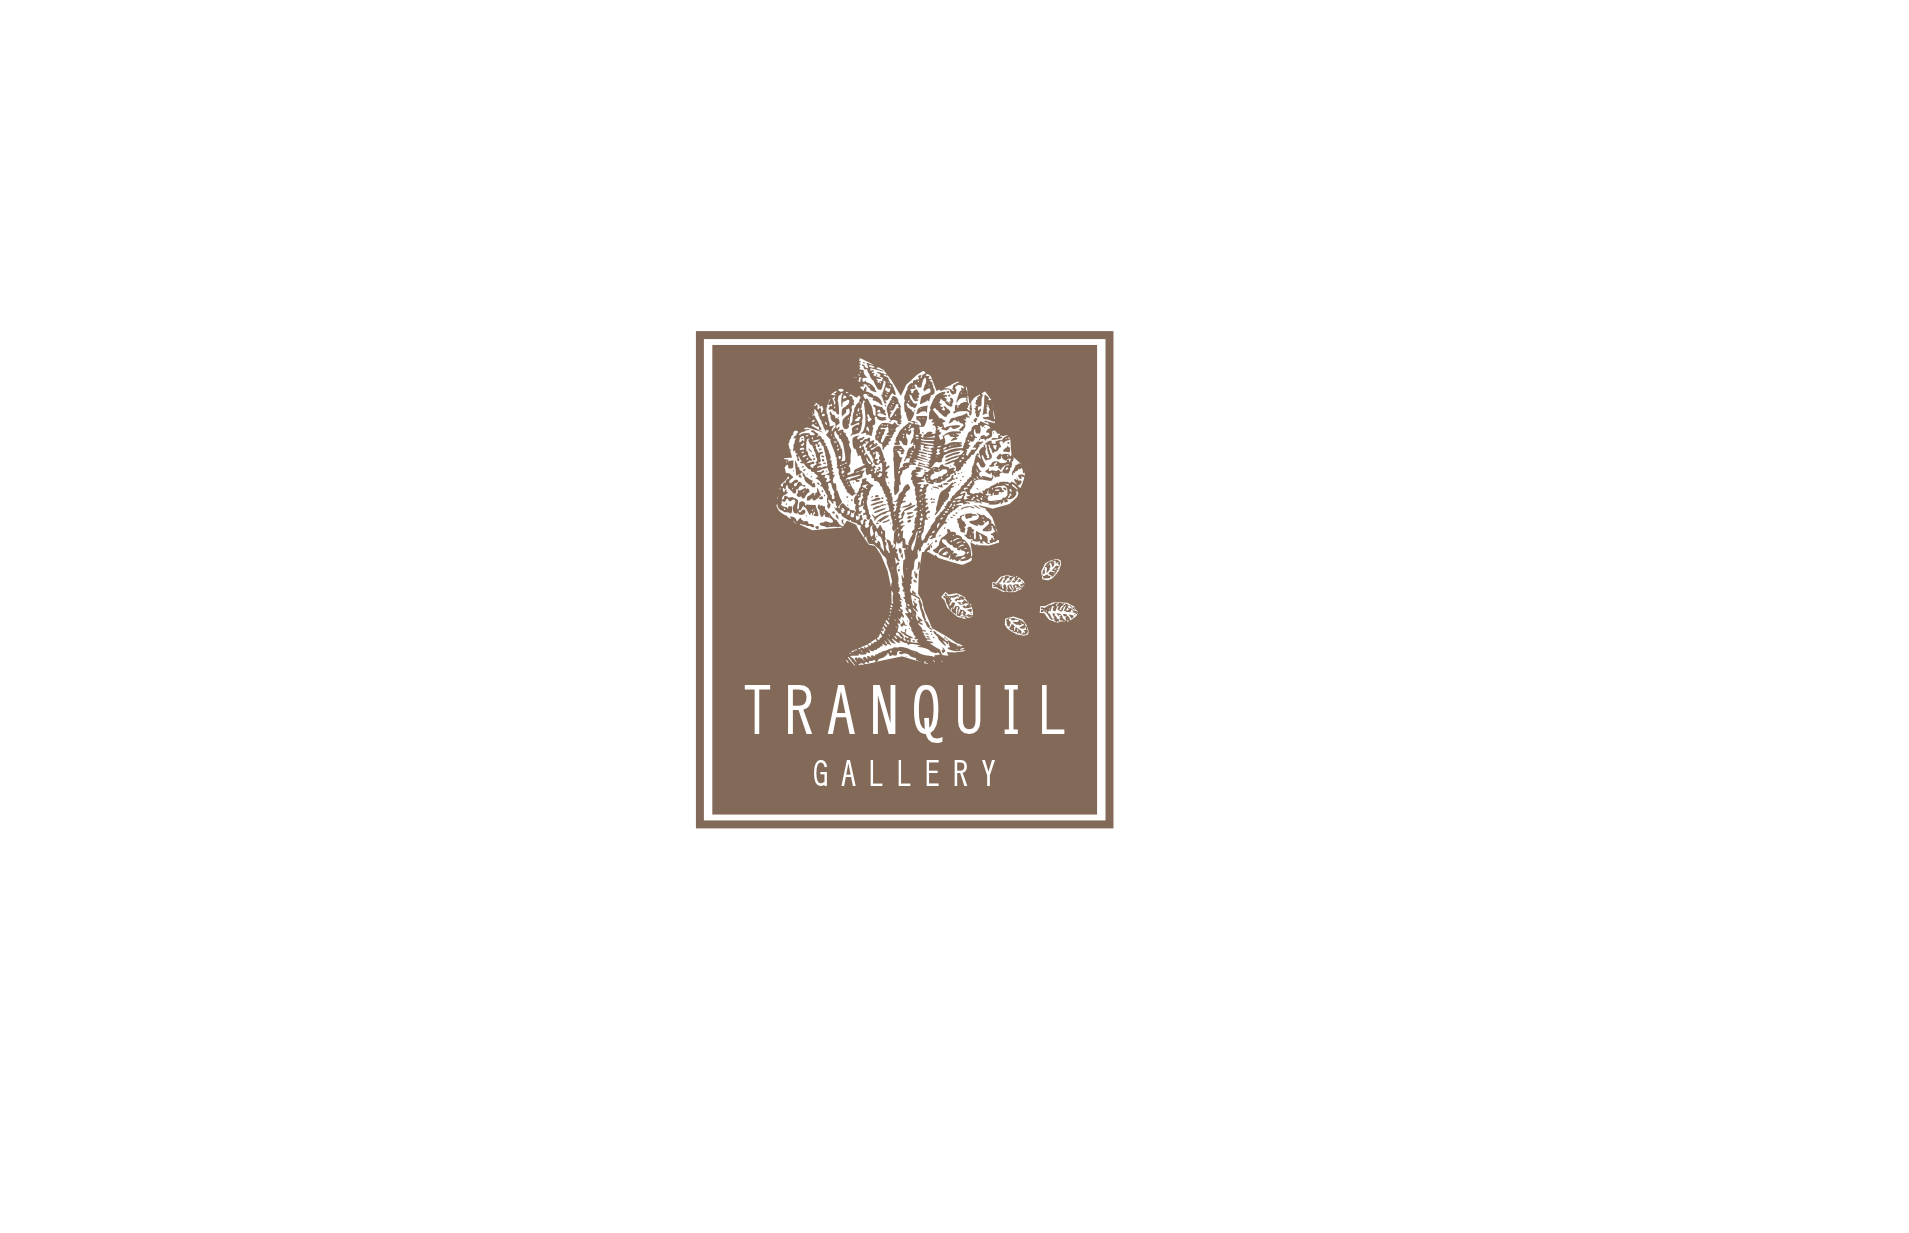 New logo wanted for Tranquil Gallery